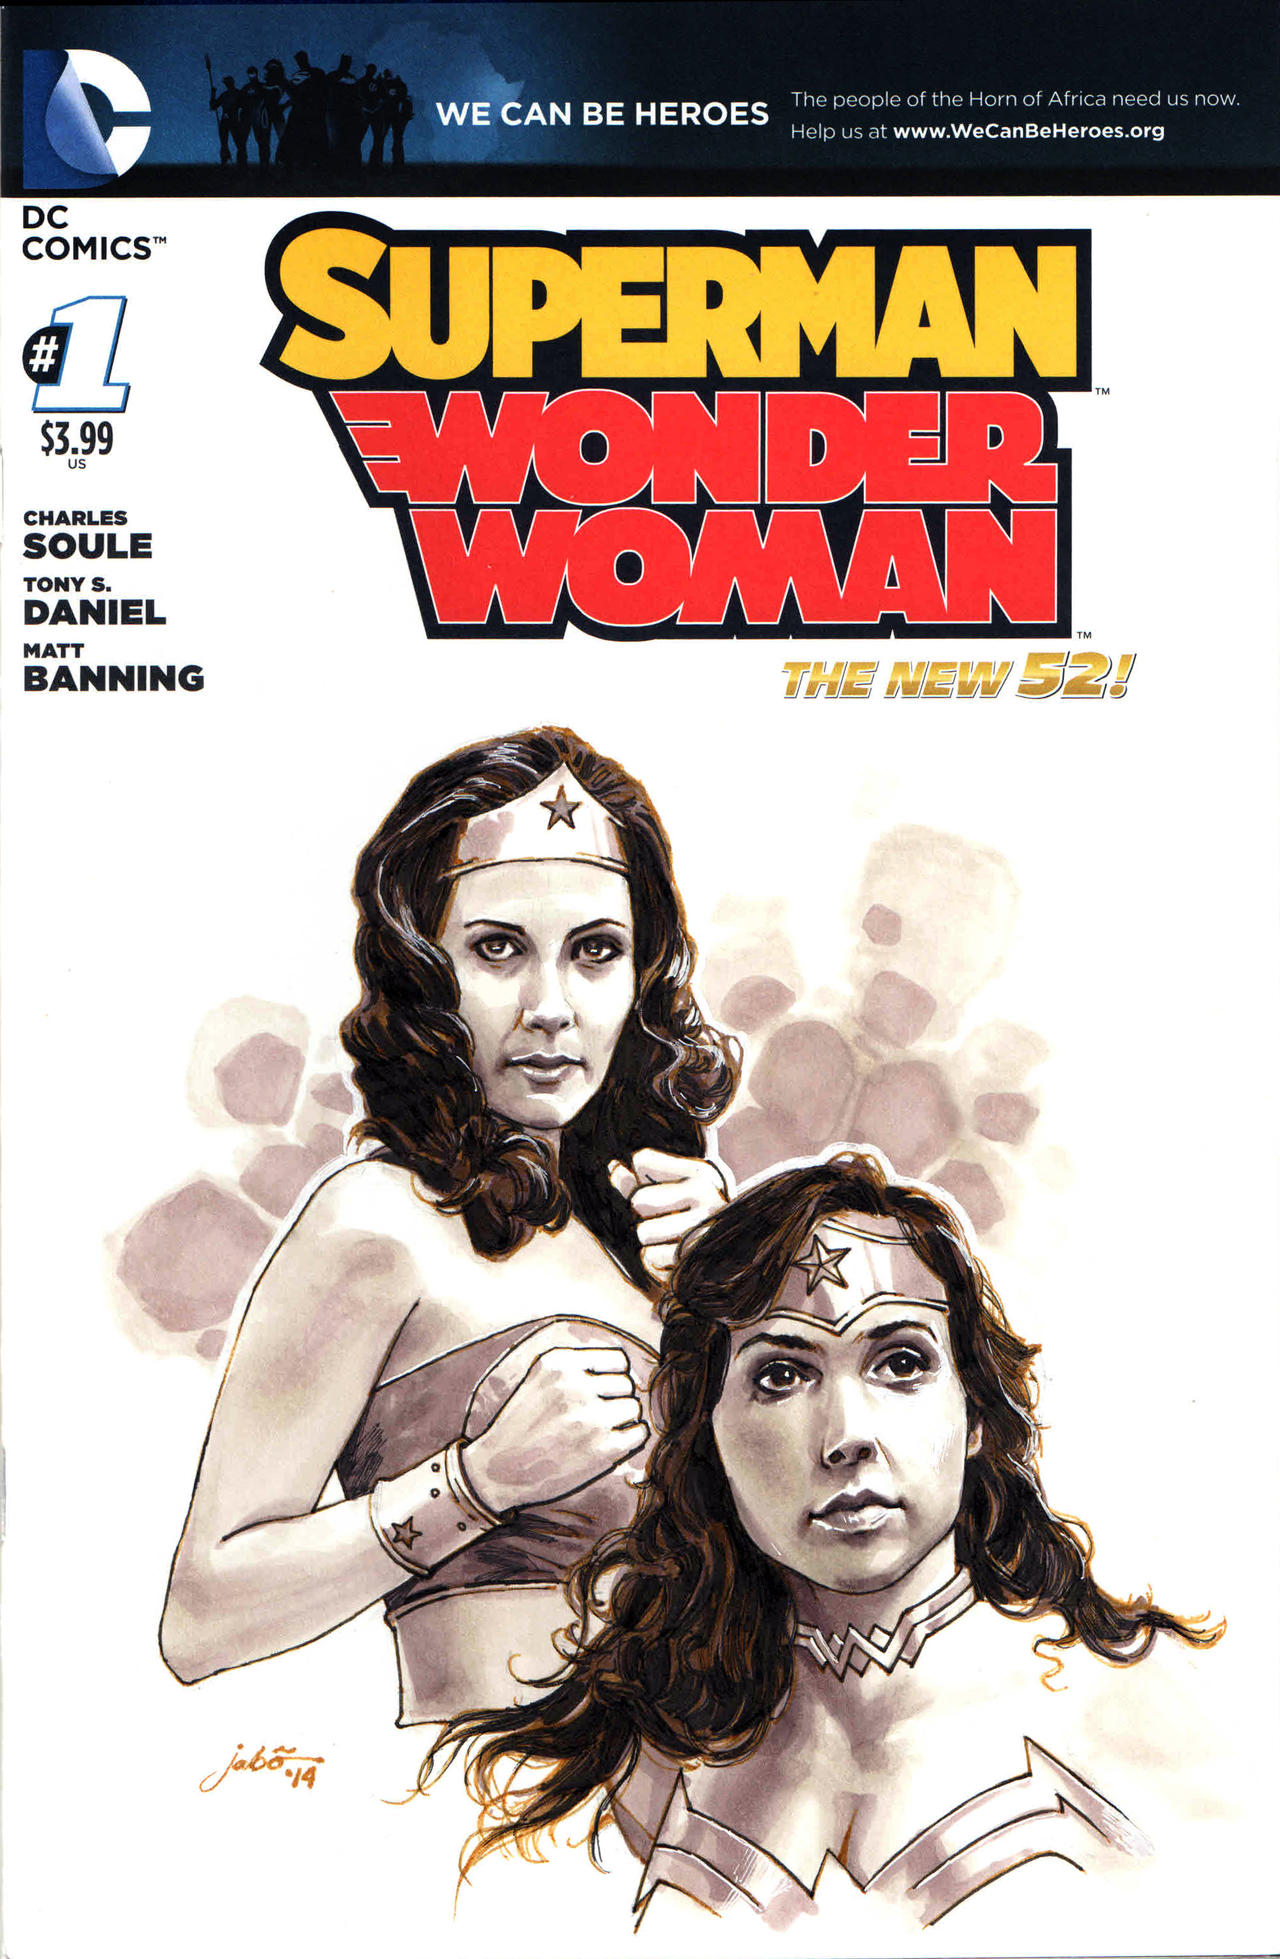 Wonder Women - blank cover commission by jbcasacop